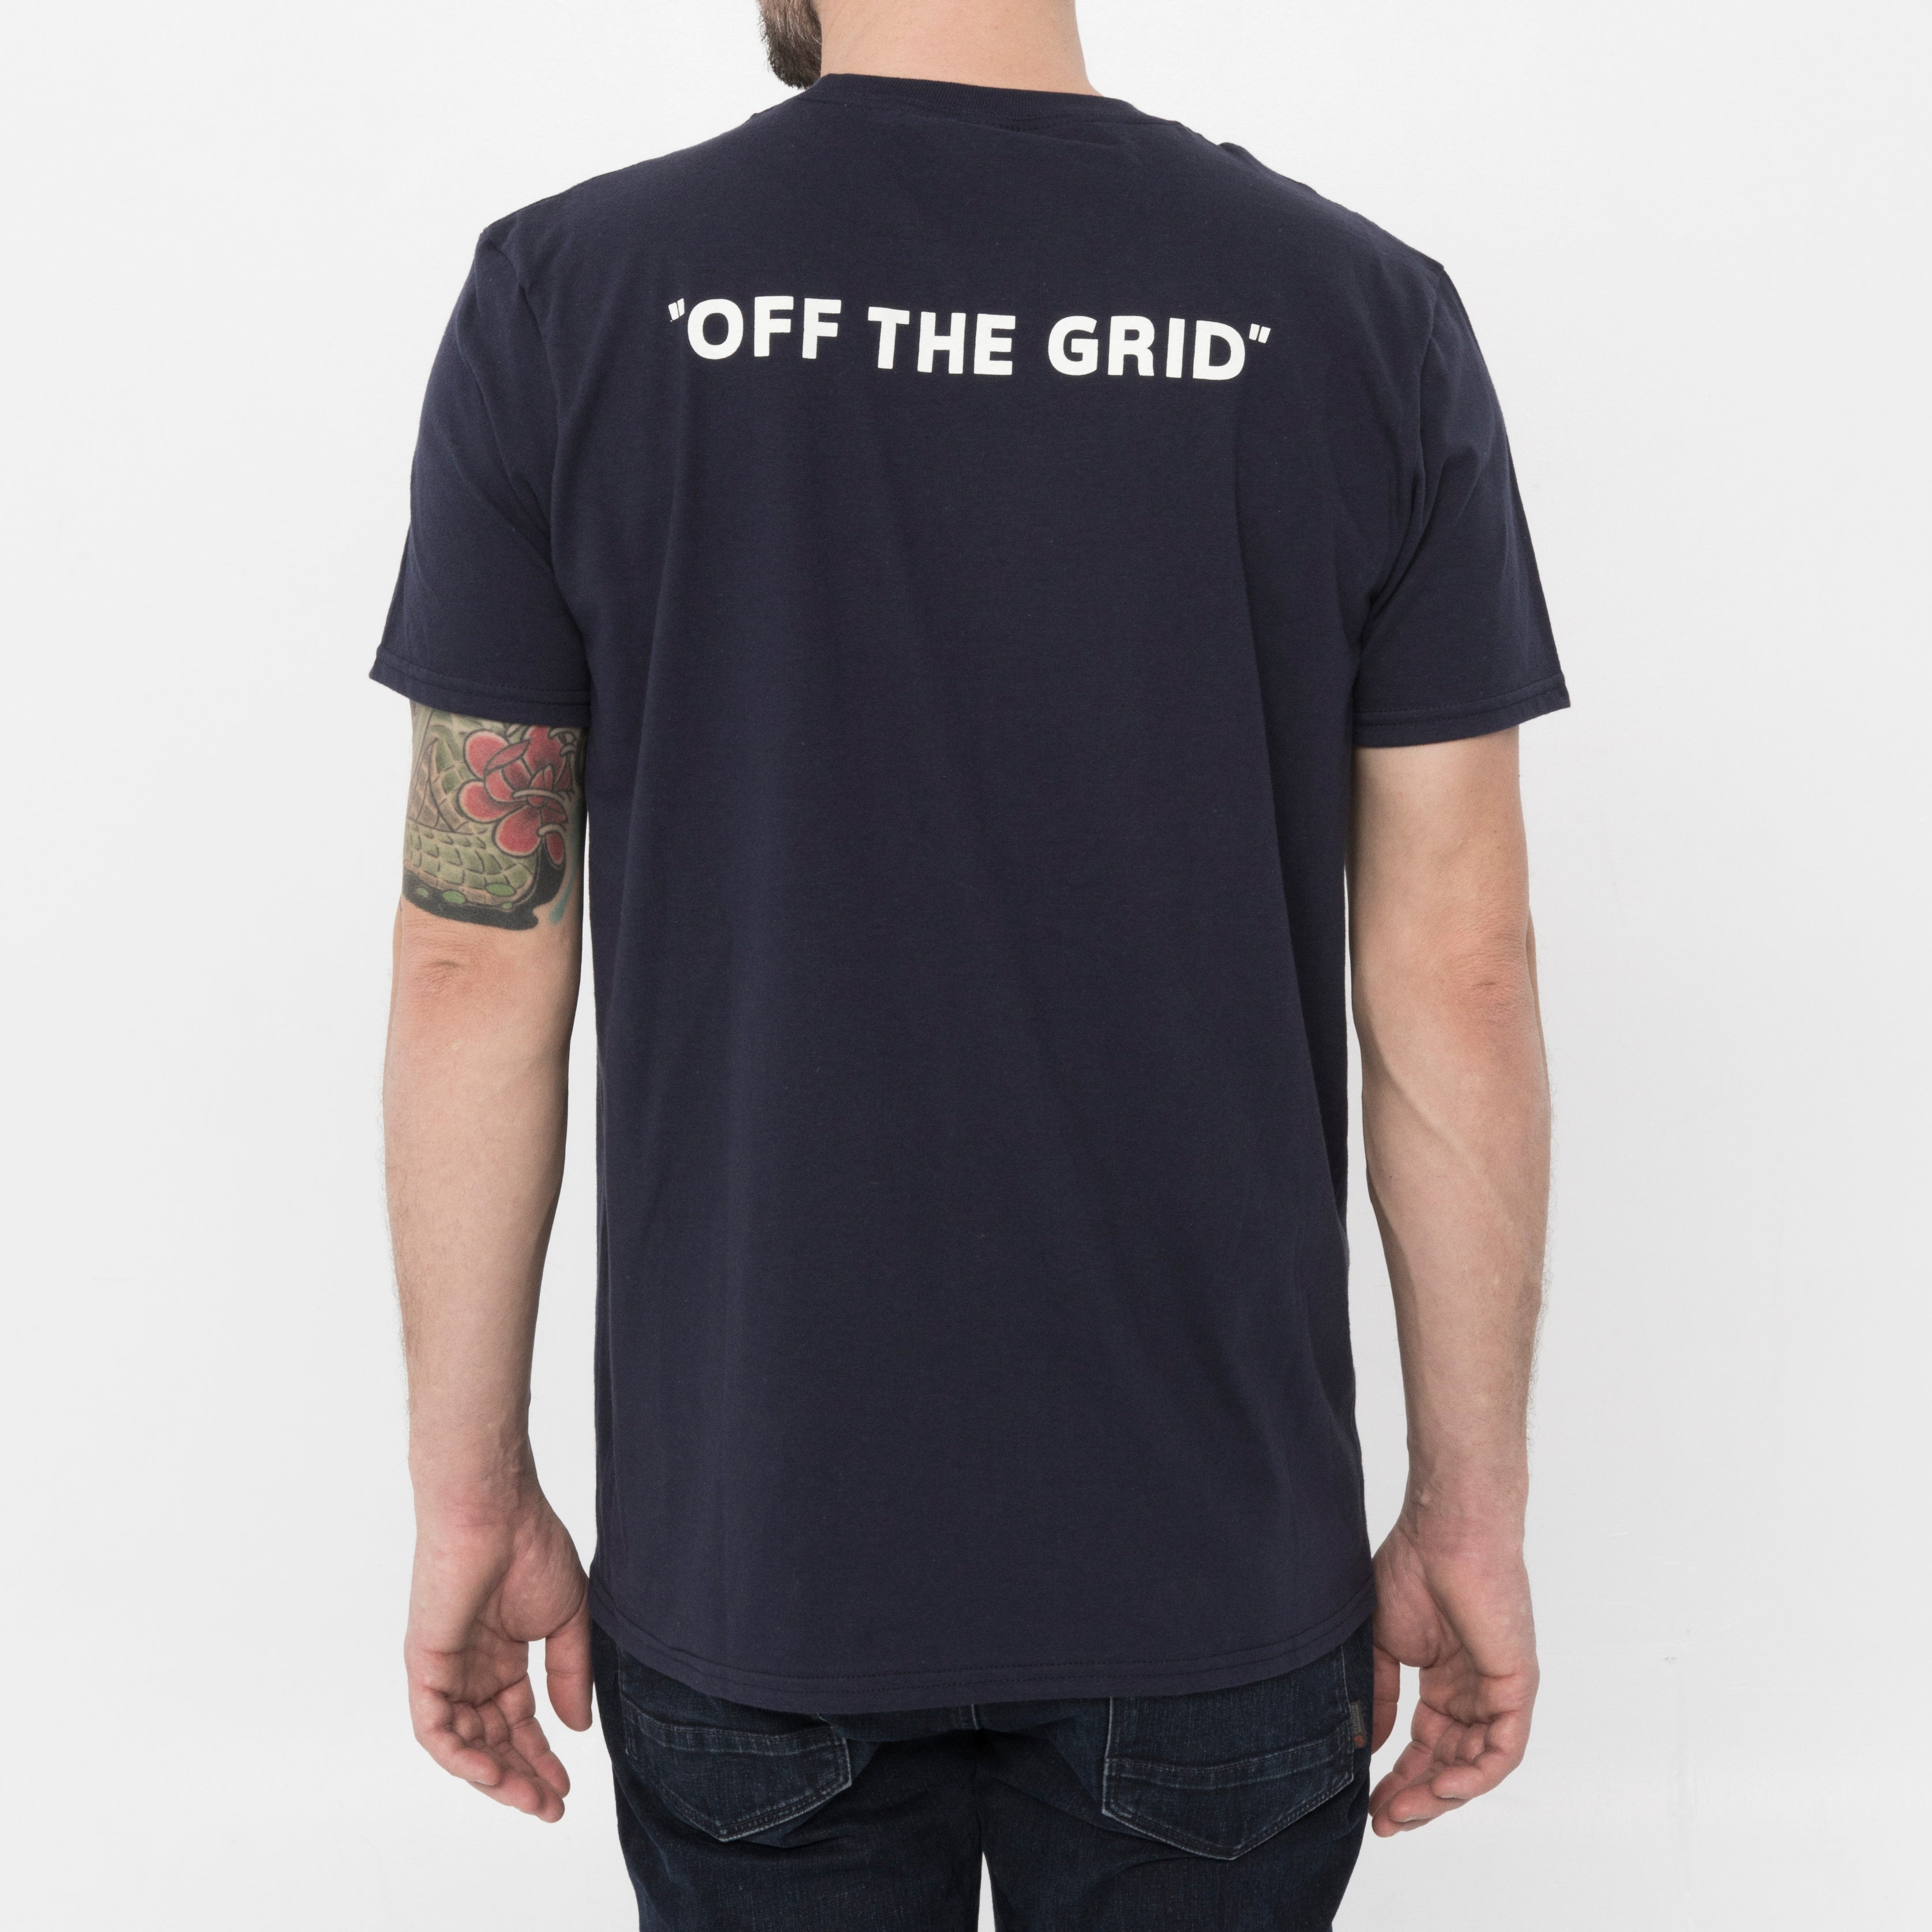 Off The Grid Vanlife Pocket Tee - By Nomad Design